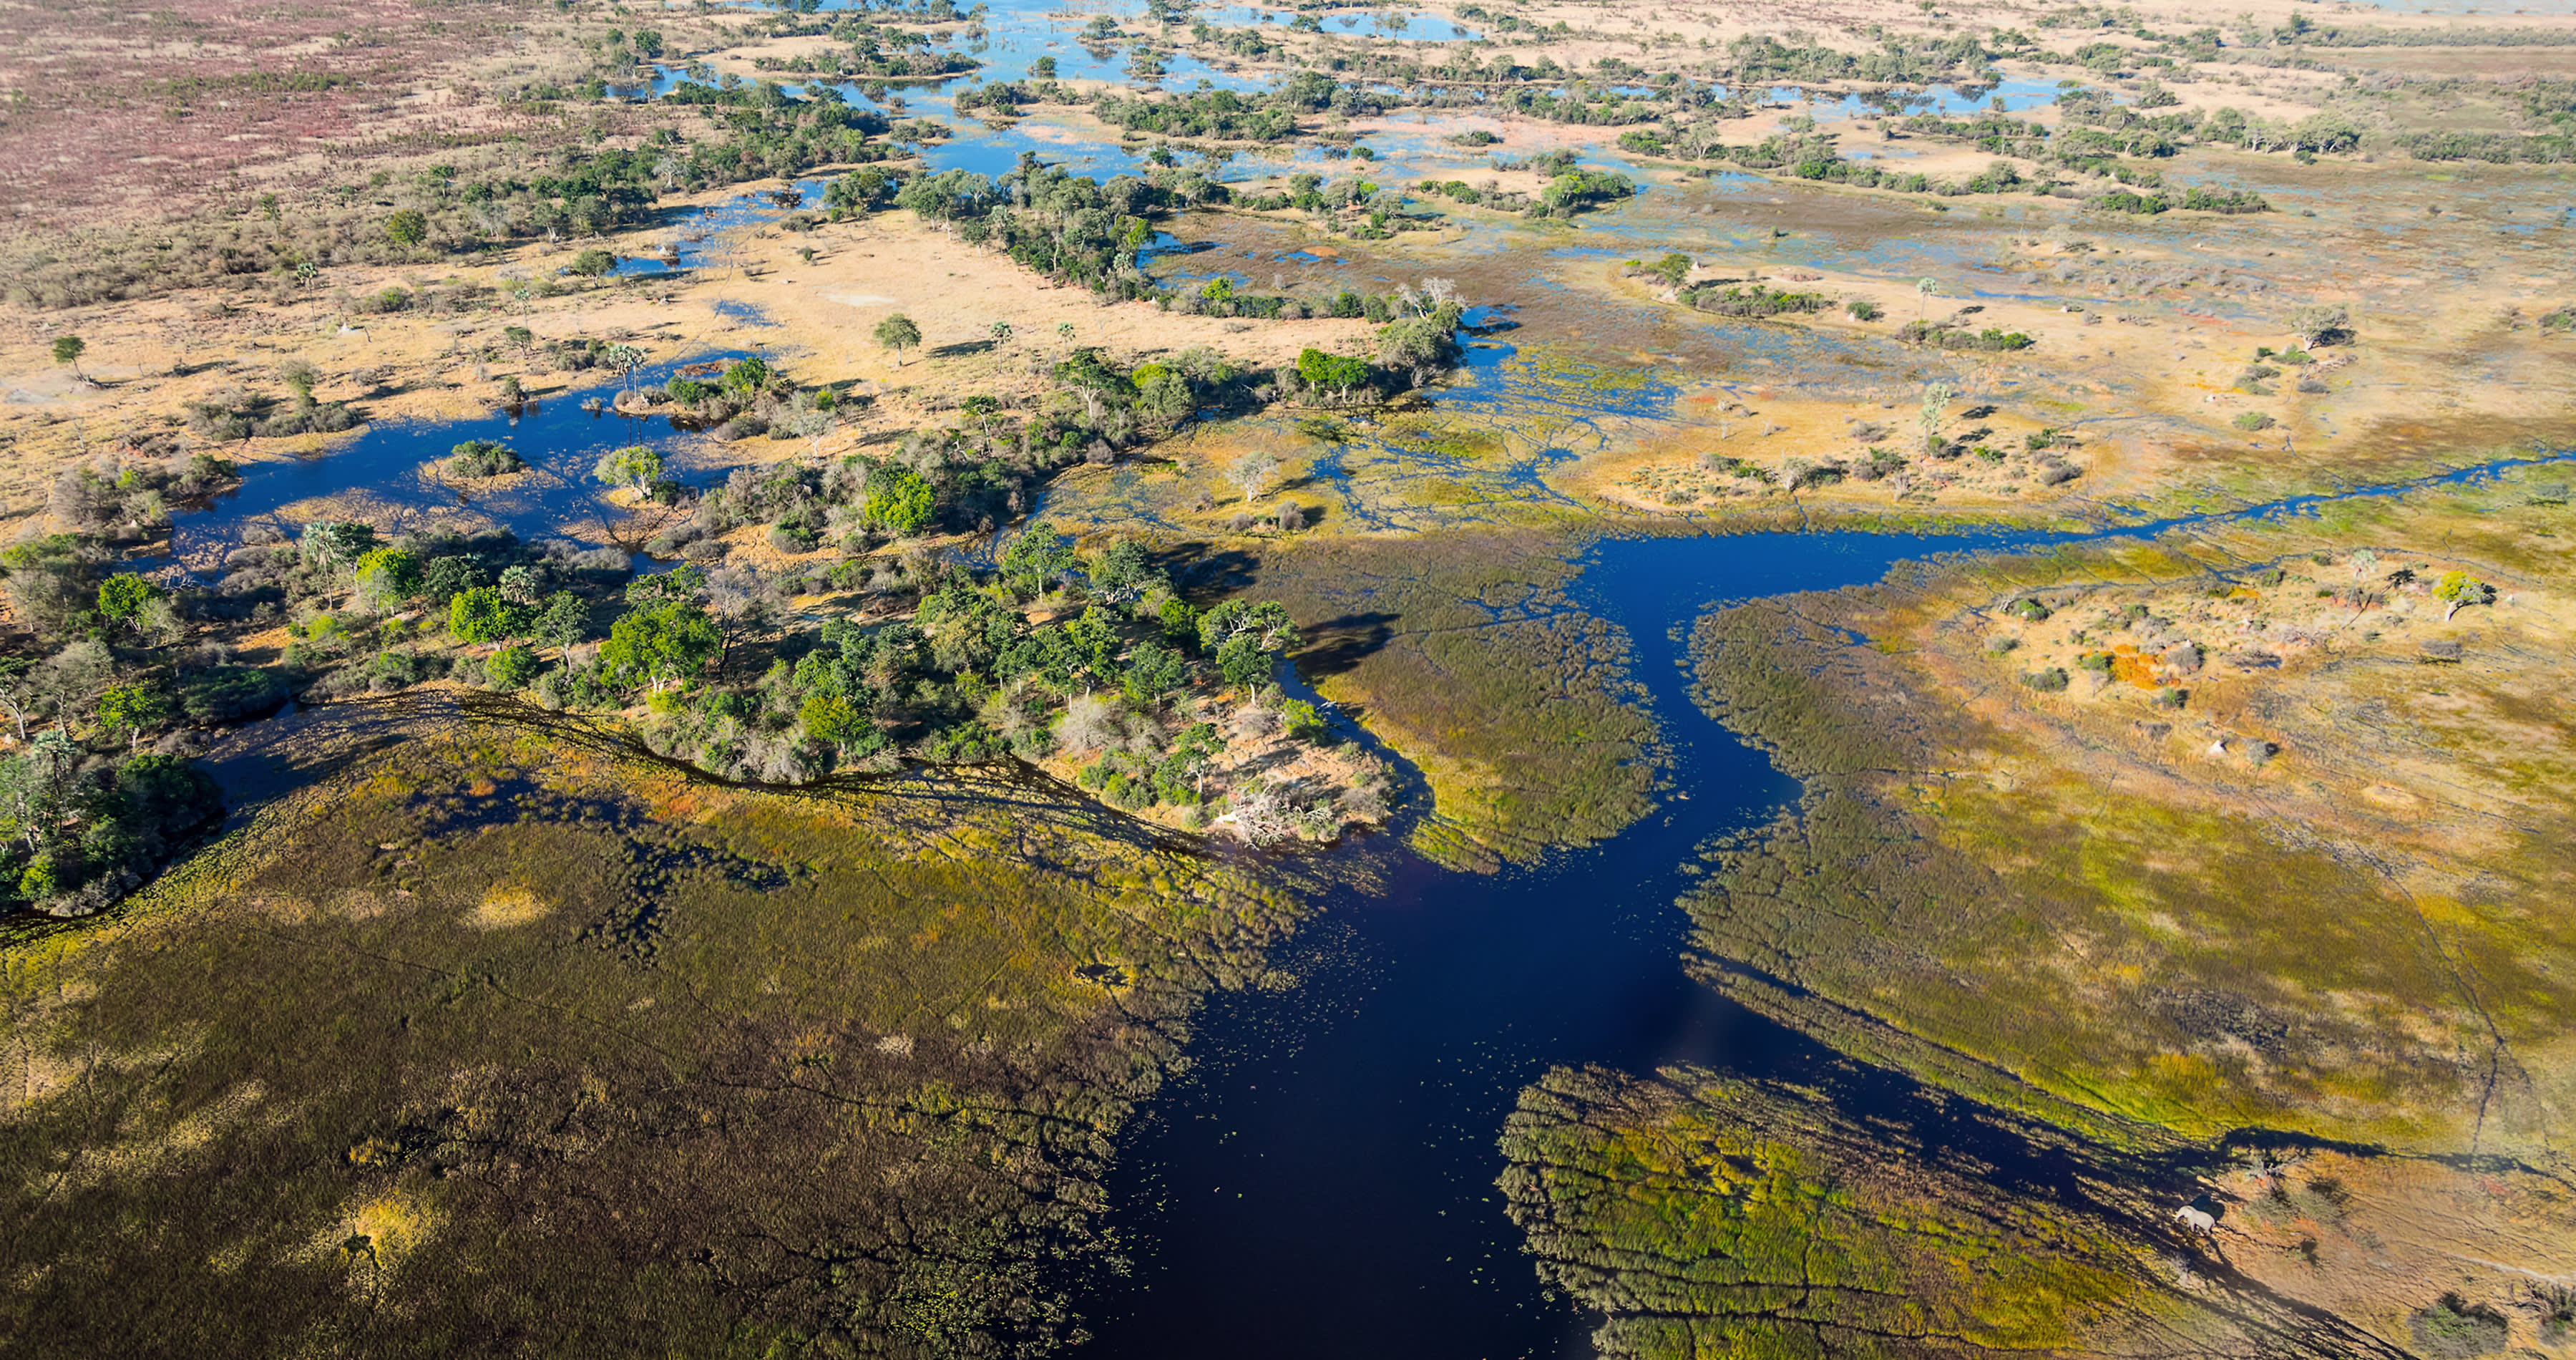 okavango delta in Botswana in africa from above out of airplane